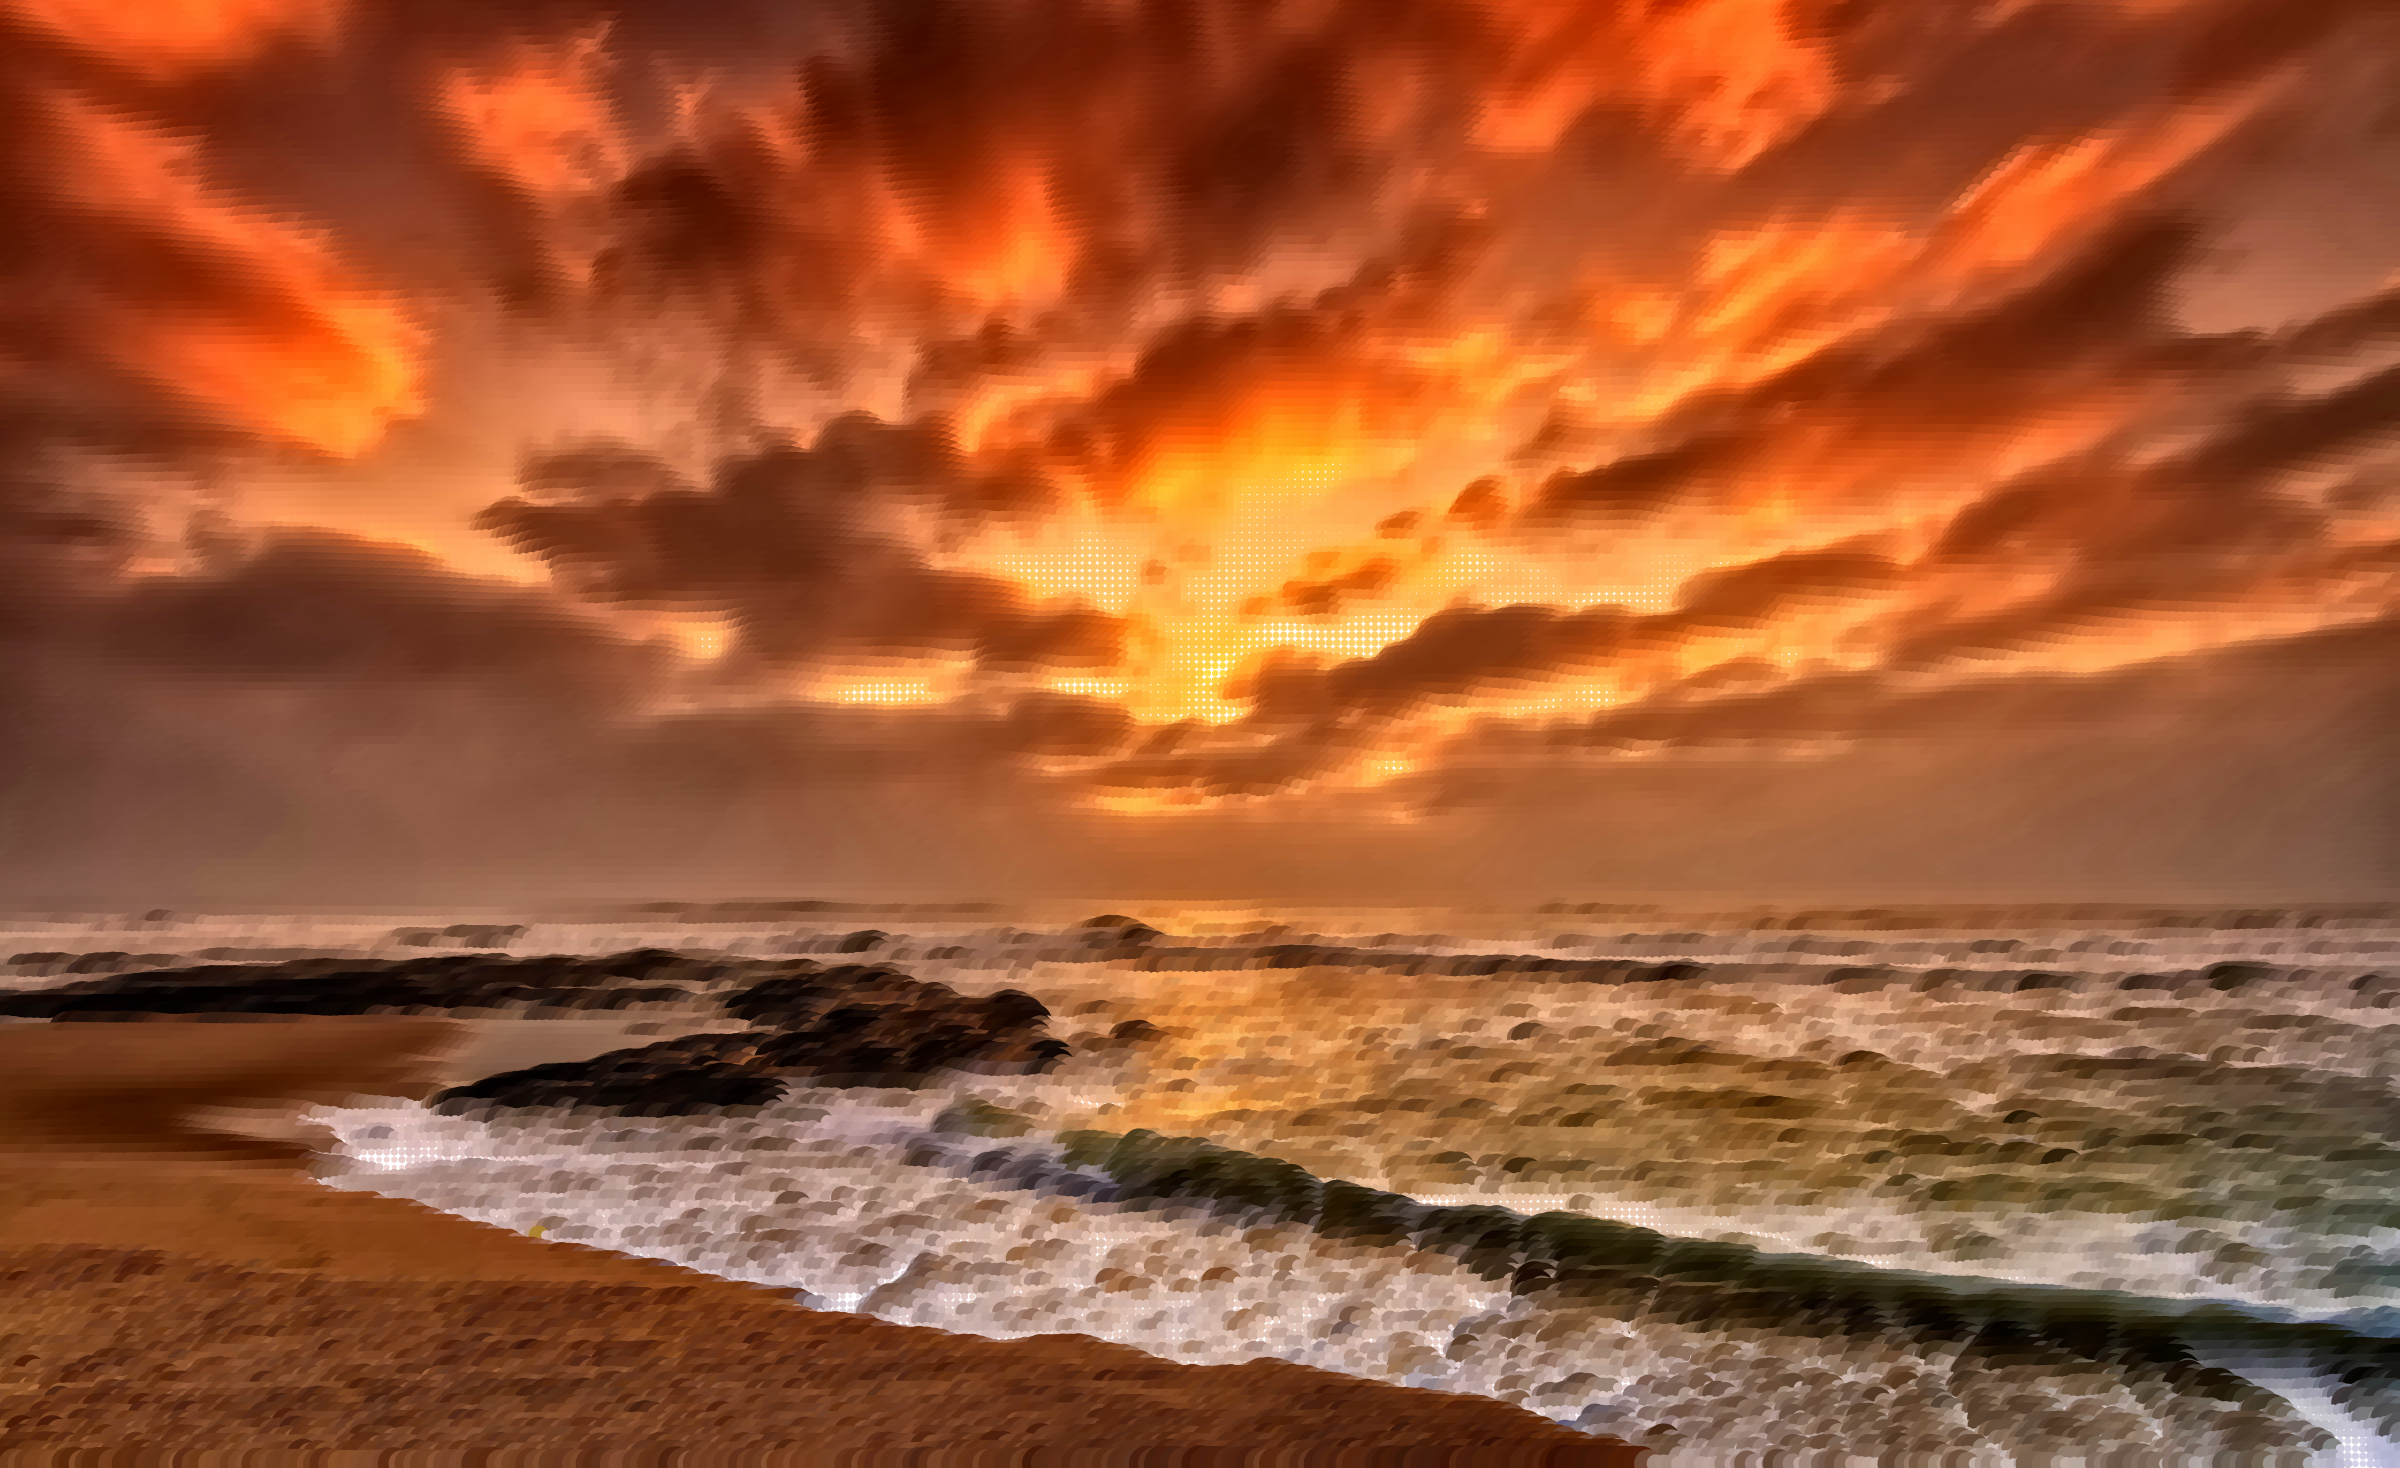 Surreal Beach Sunset by GDJ